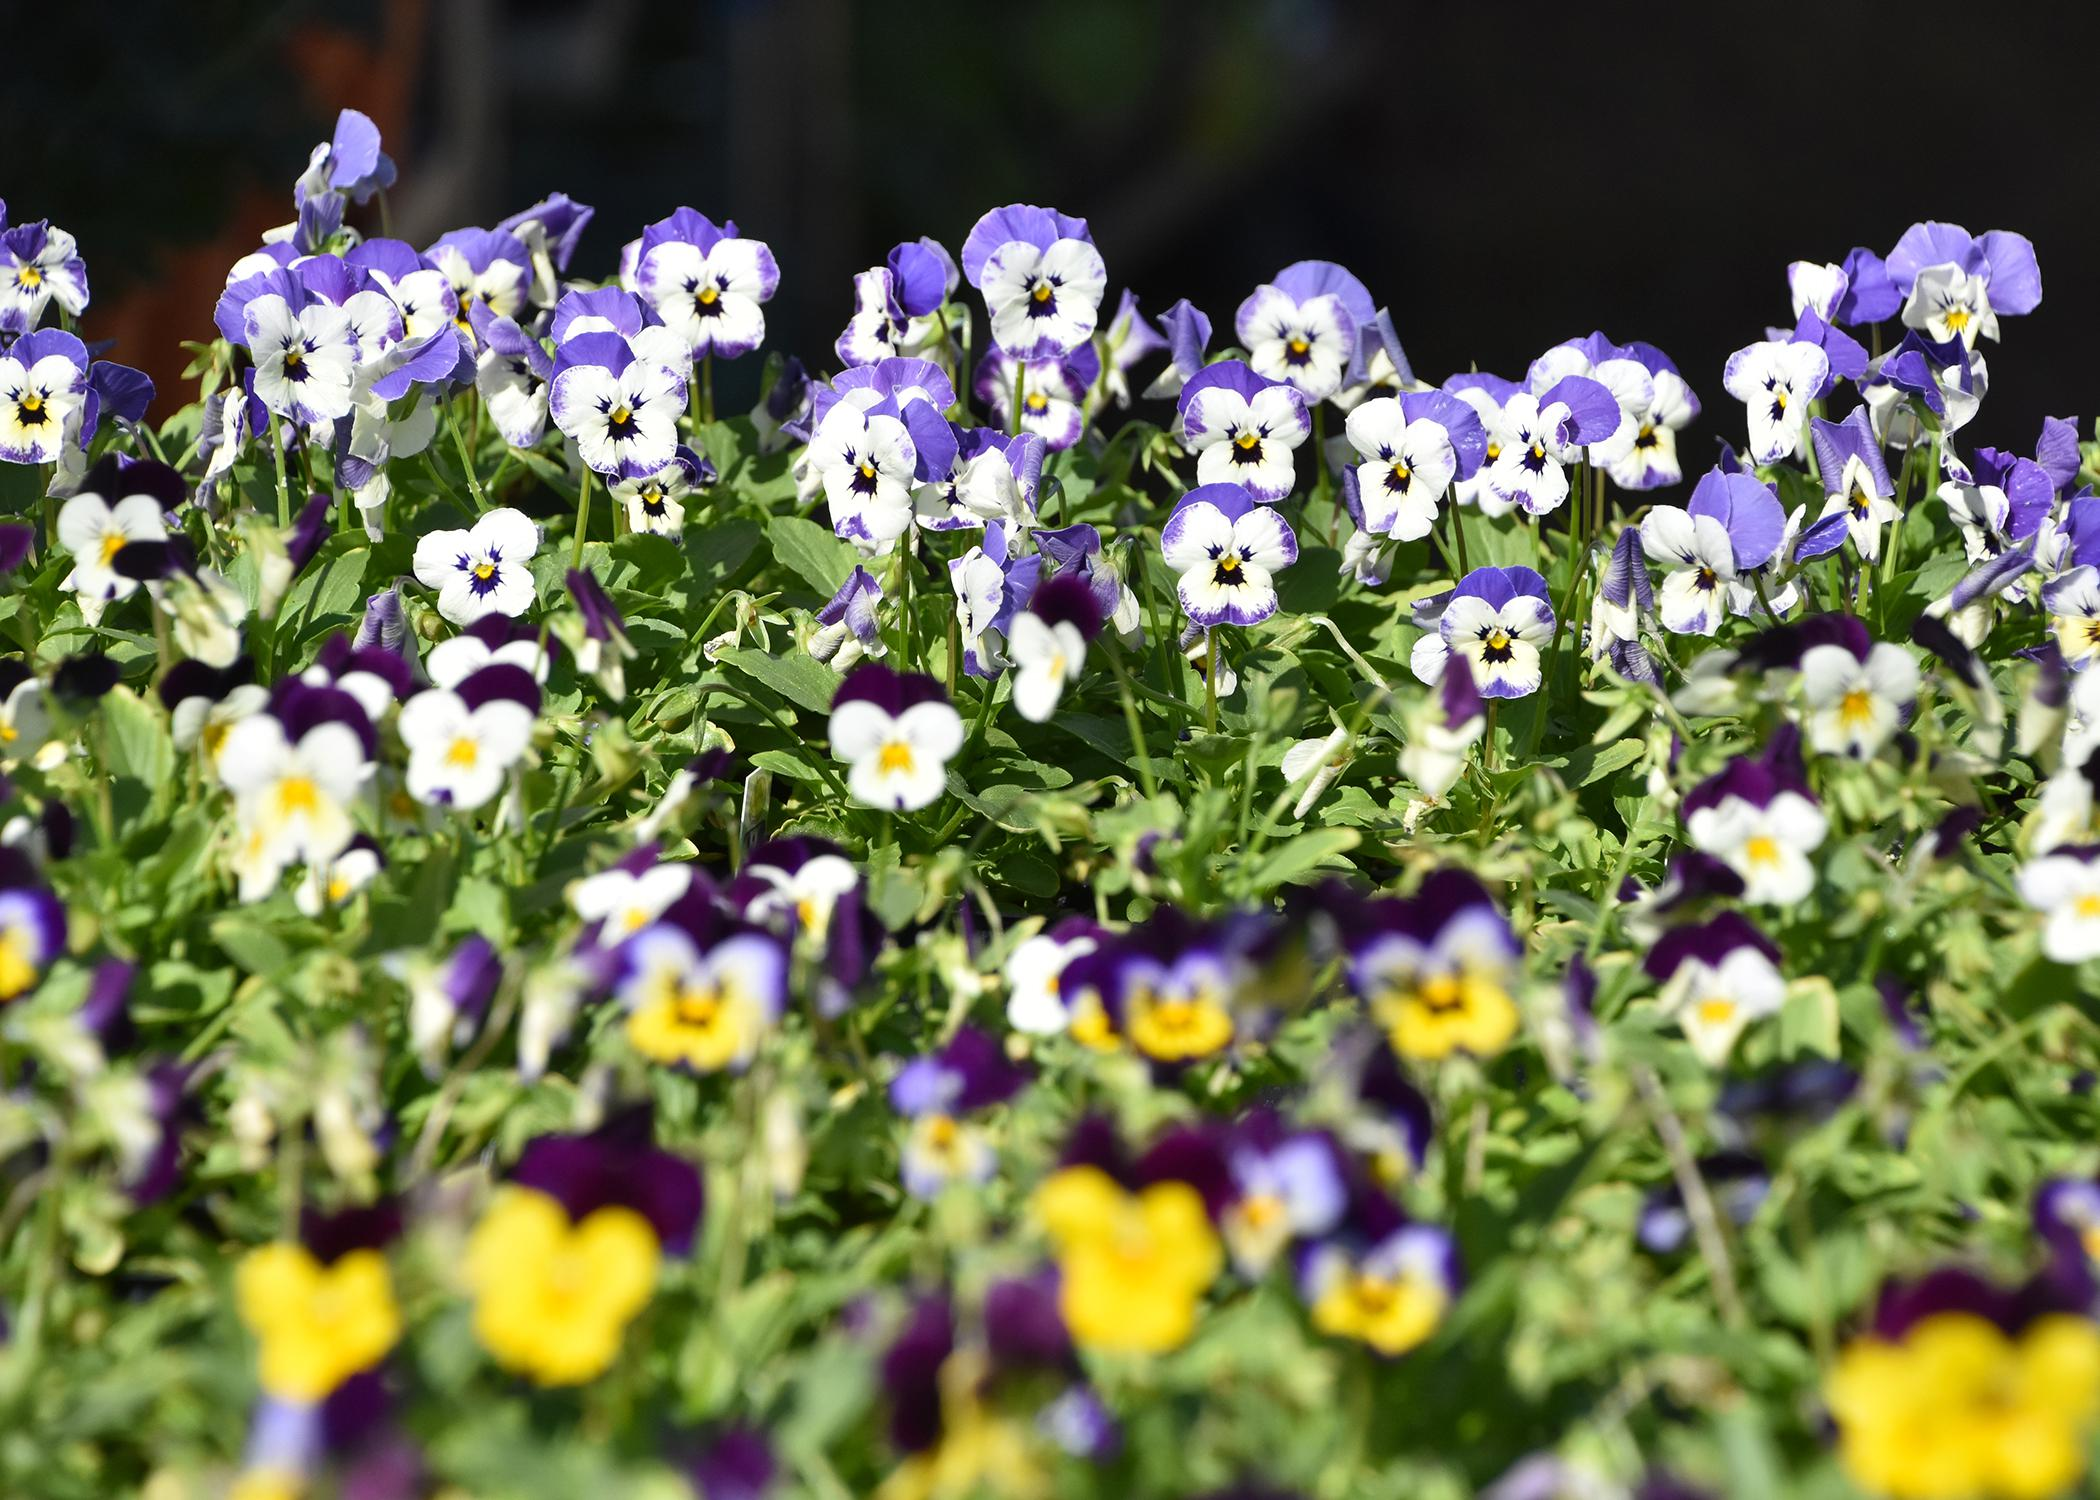 Violas come in a wide variety of colors and produce flowers in prolific numbers. (Photo by MSU Extension Service/Gary Bachman)